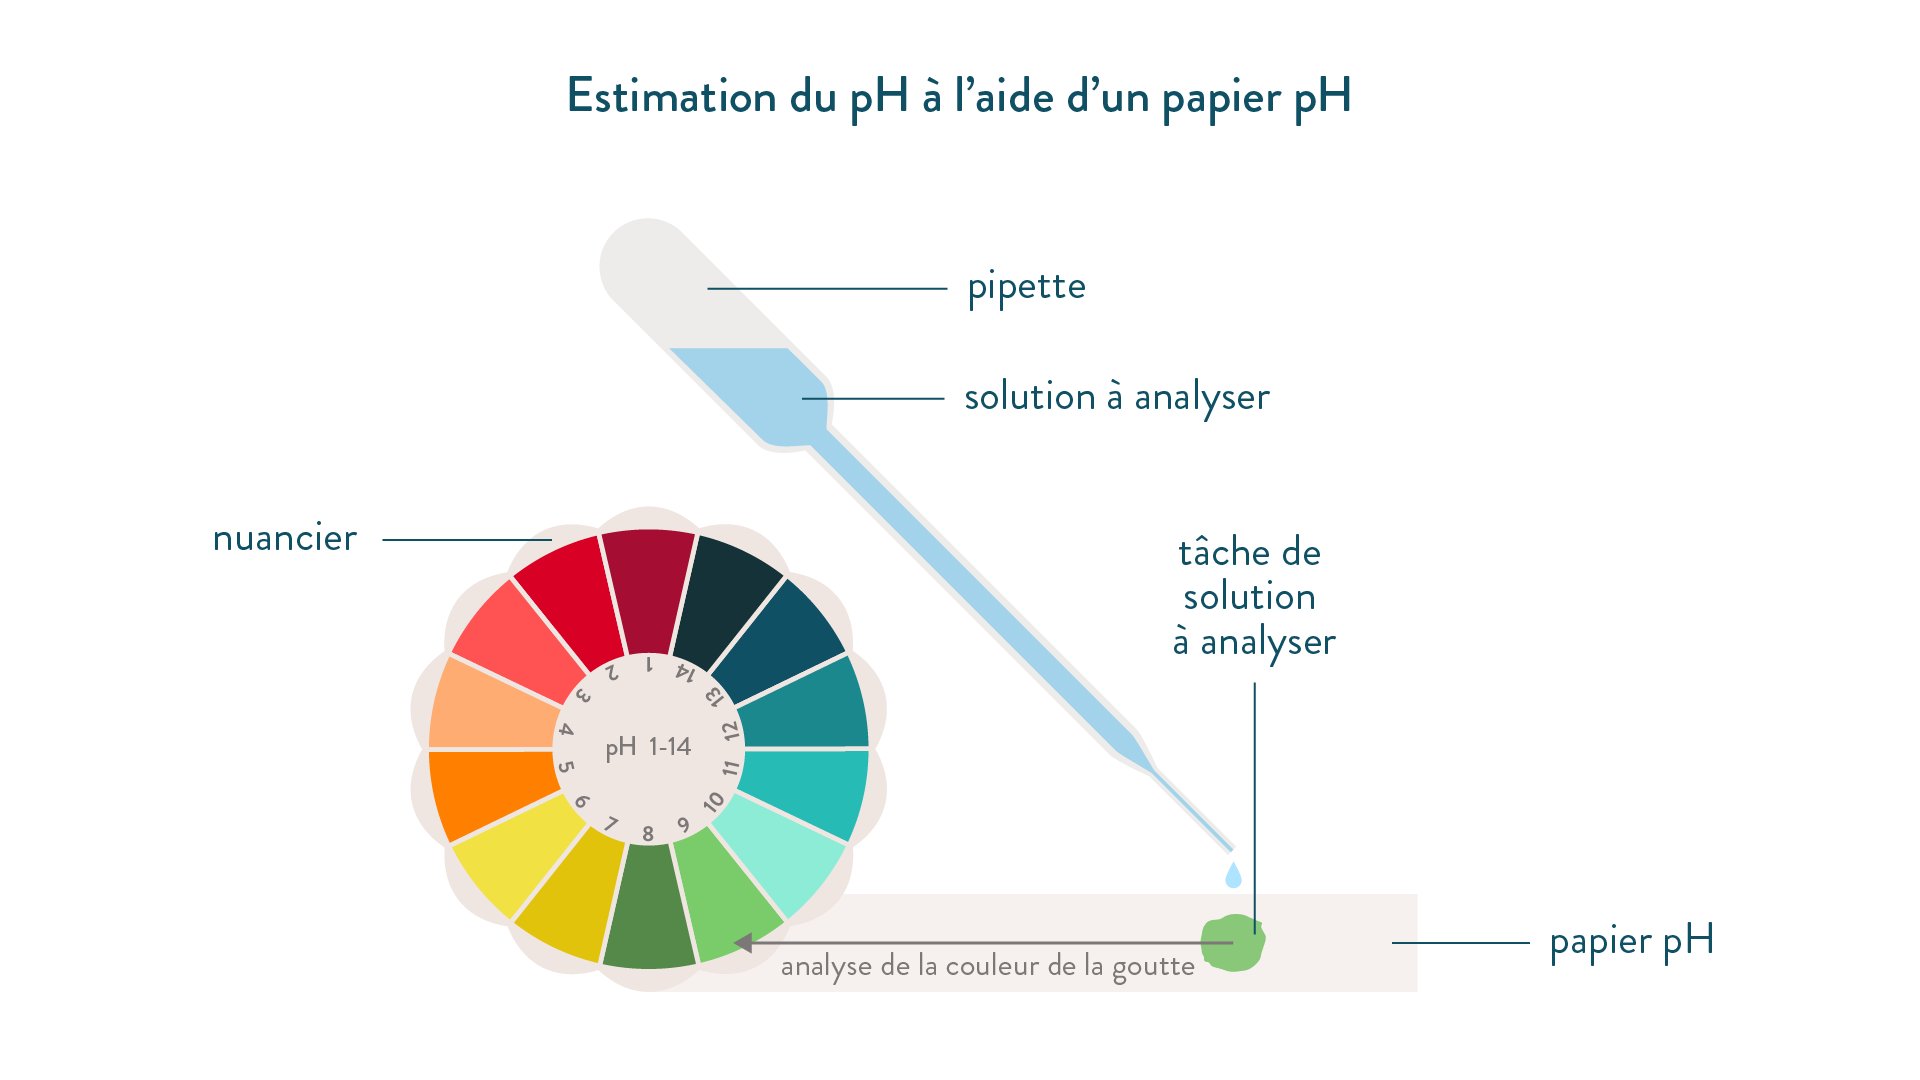 Estimation du pH à l'aide d'un papier pH